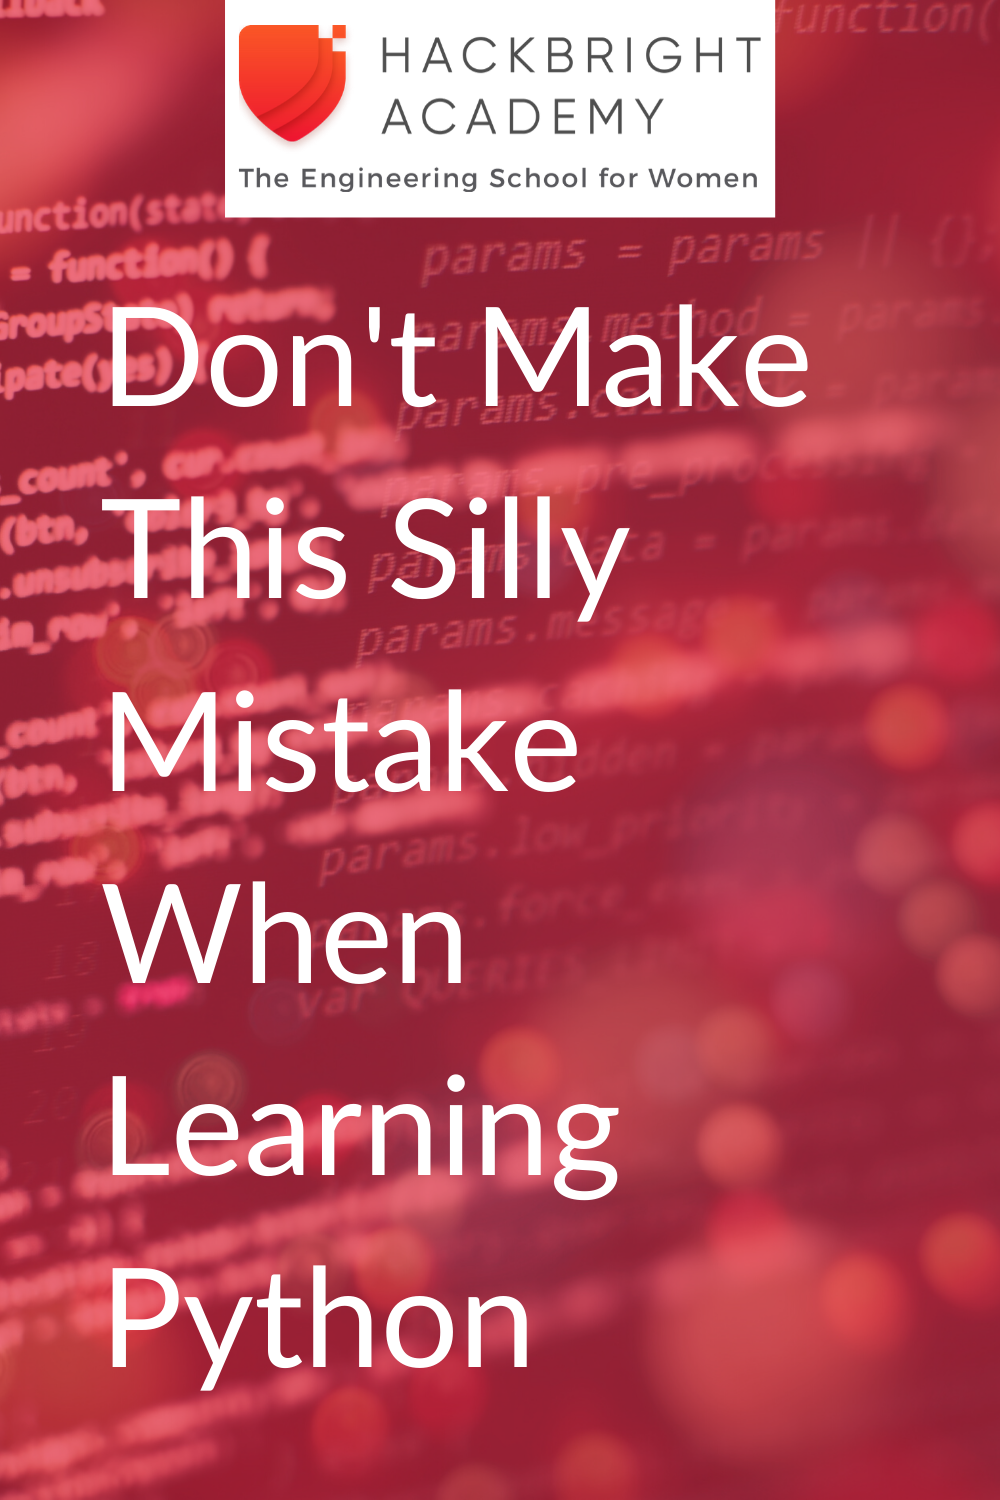 Don't Make This Silly Mistake When Learning Python